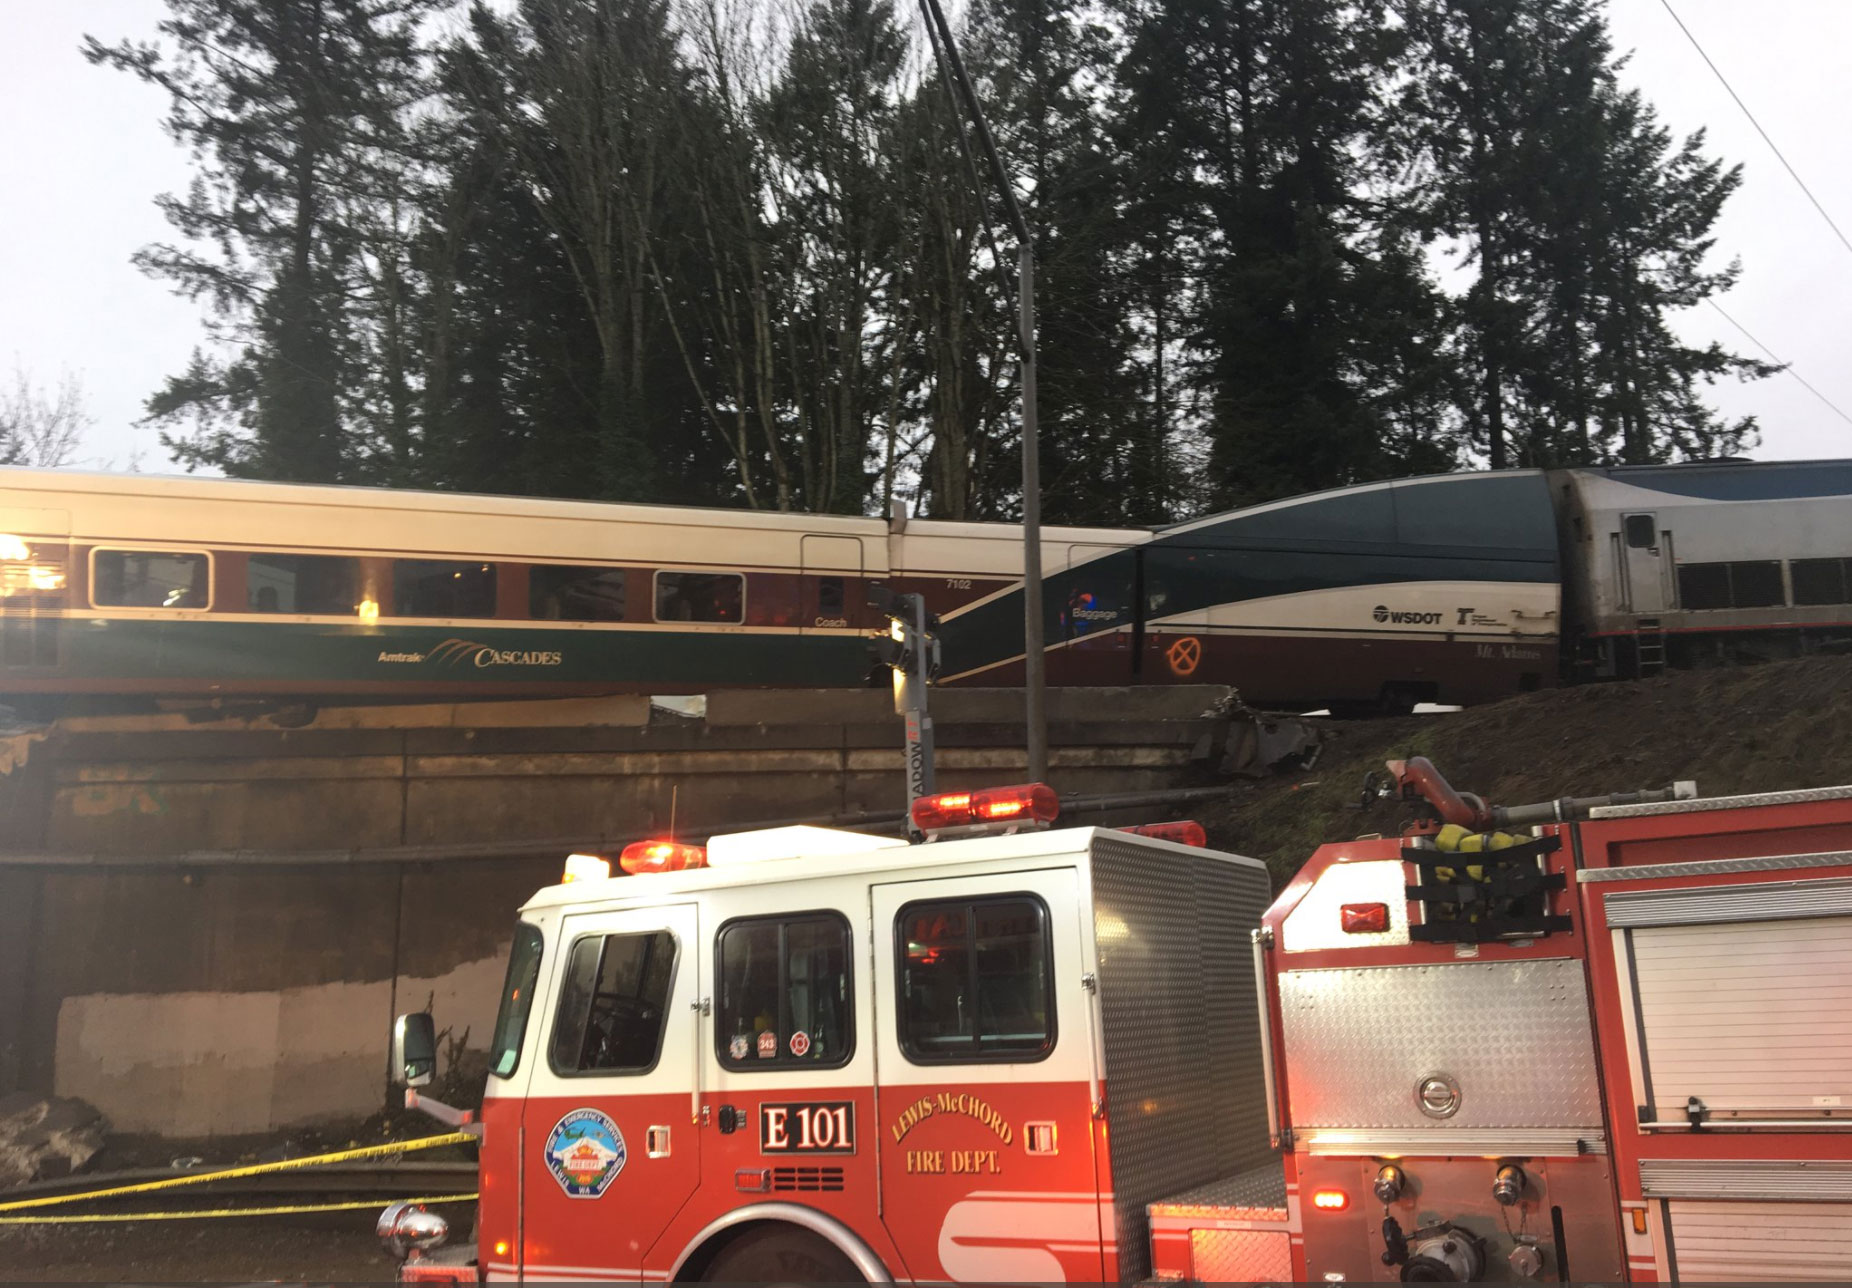 "<div class=""meta image-caption""><div class=""origin-logo origin-image none""><span>none</span></div><span class=""caption-text"">The Pierce Co Sheriff shared these photos from the scene on Monday. (PierceSheriff/Twitter)</span></div>"